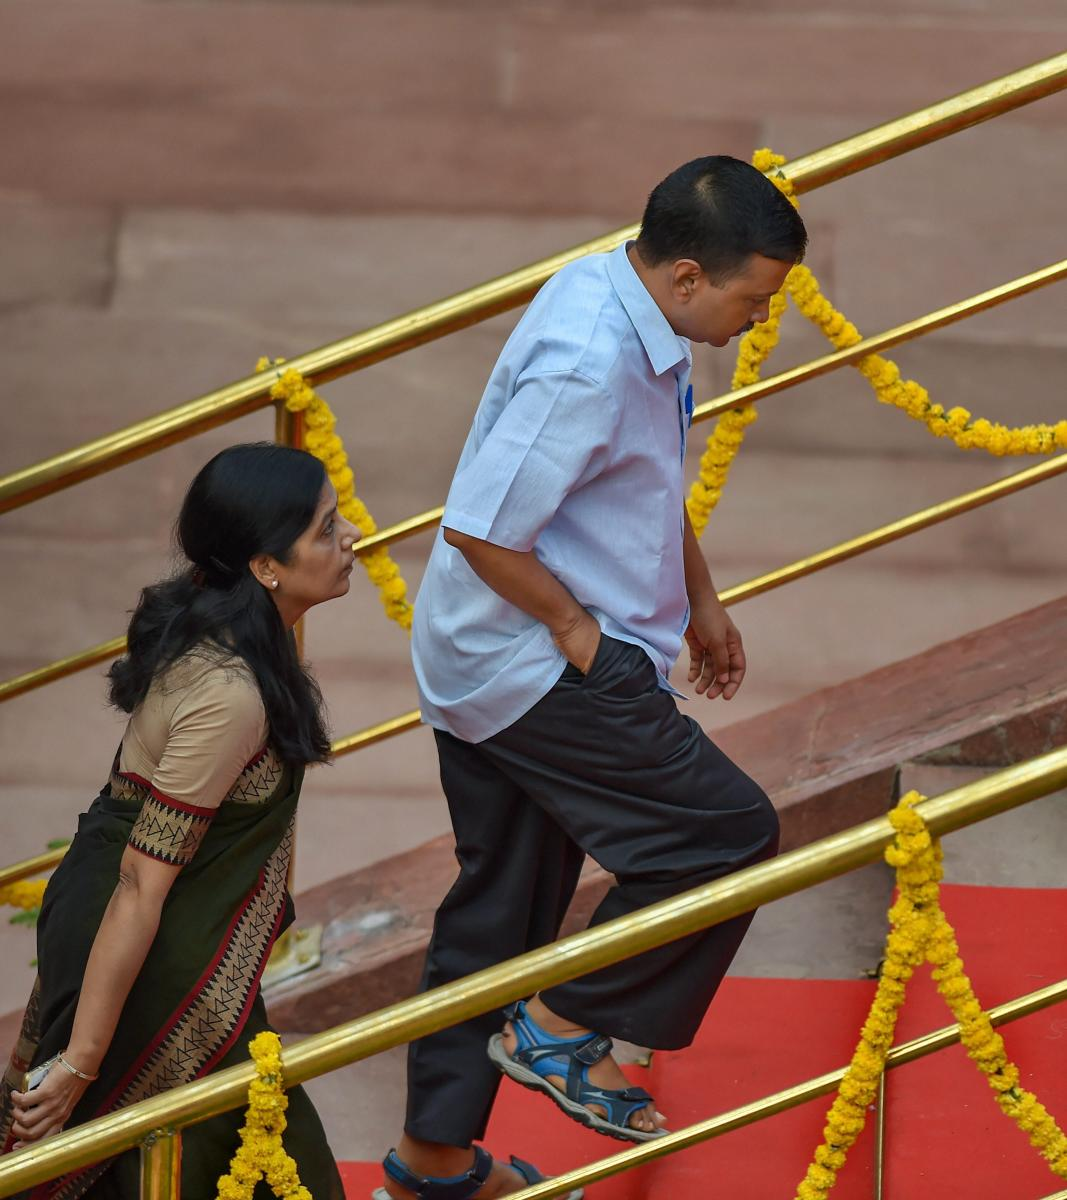 Delhi Chief Minister Arvind Kejriwal and his wife Sunita Kejriwal arrive to attend the 72nd Independence Day celebrations at the historic Red Fort, in New Delhi on Wednesday, August 15, 2018. PTI Photo